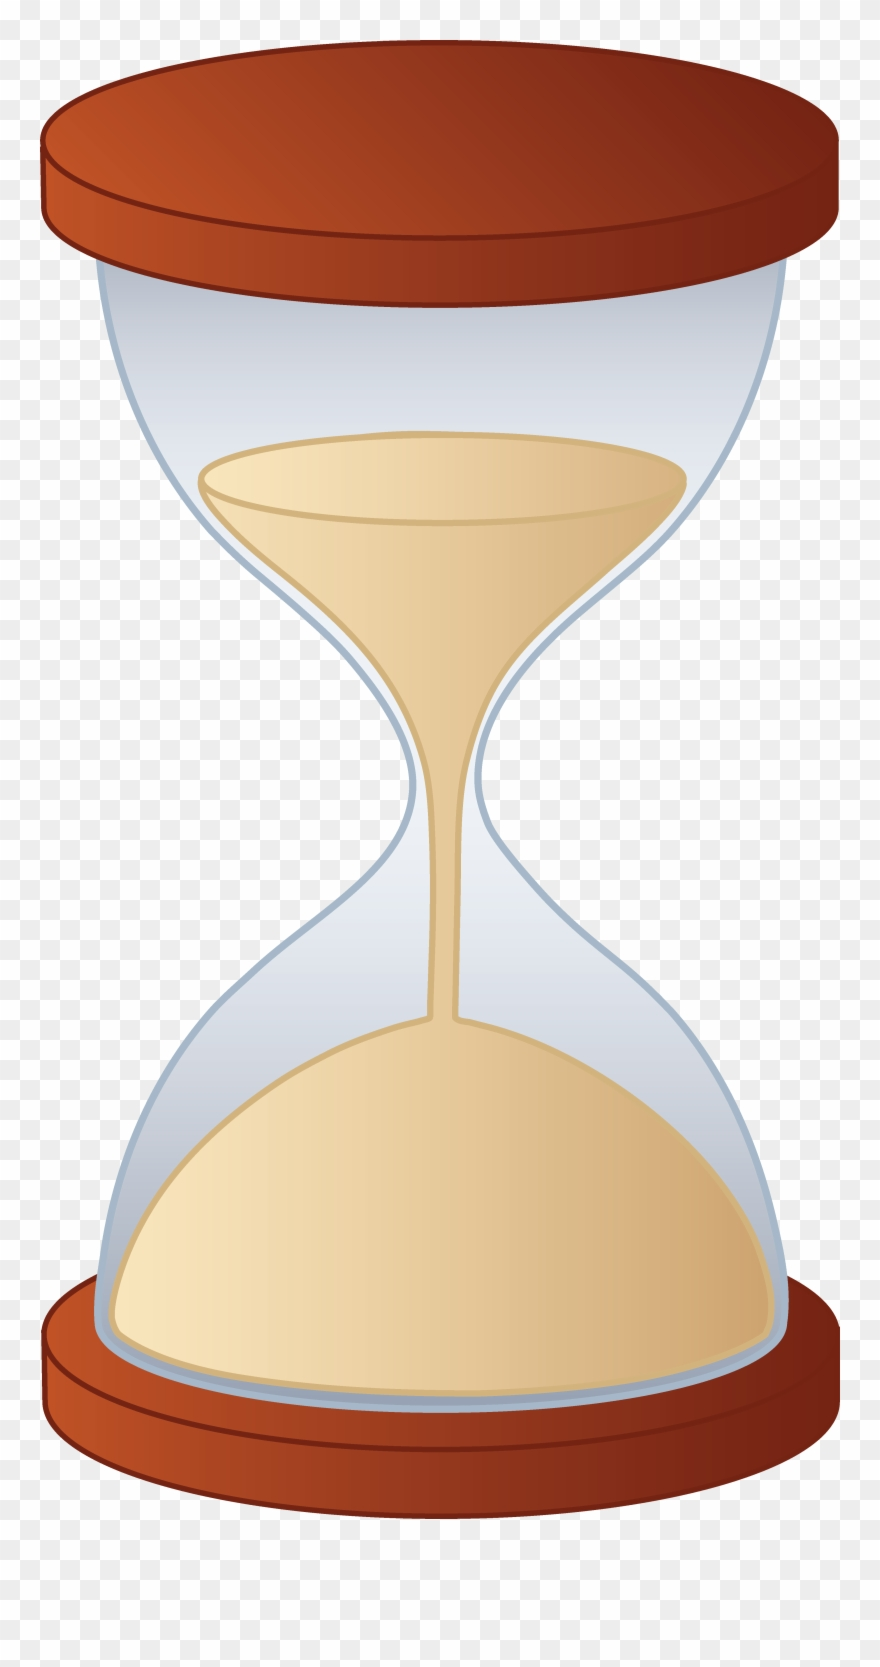 Hourglass clipart sand timer. Clock png download